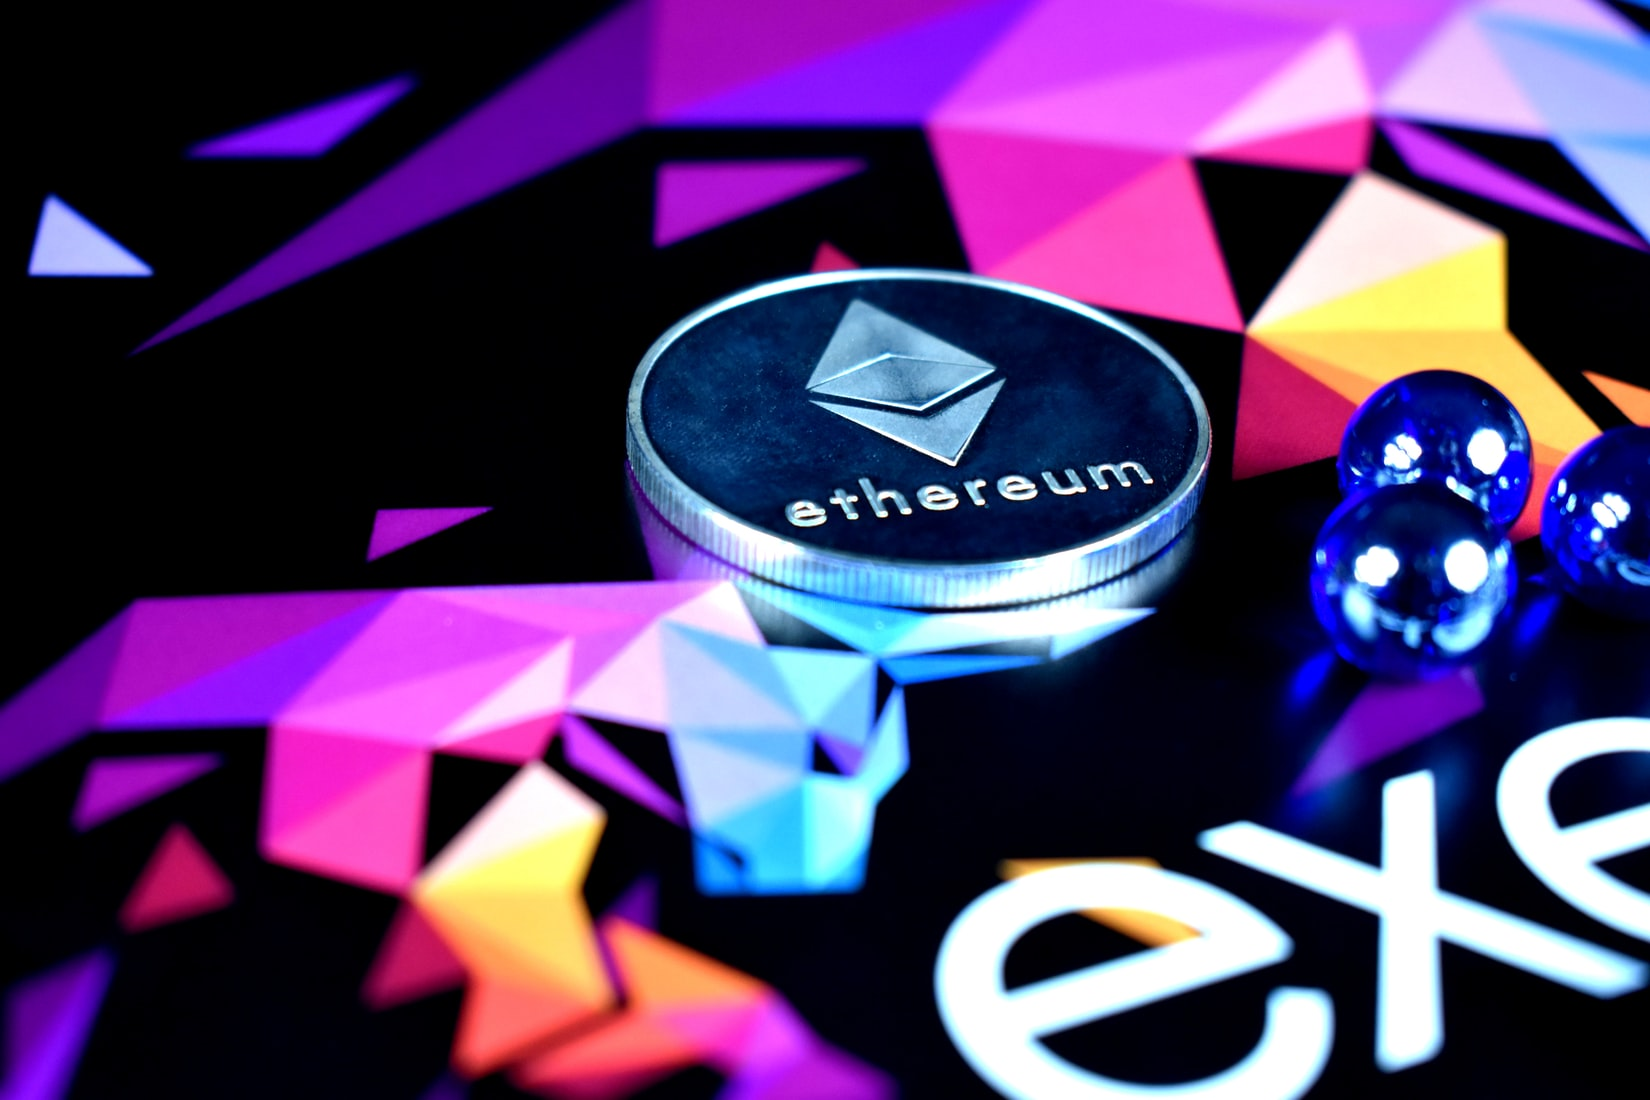 Ethereum coin with logo on purple and black background